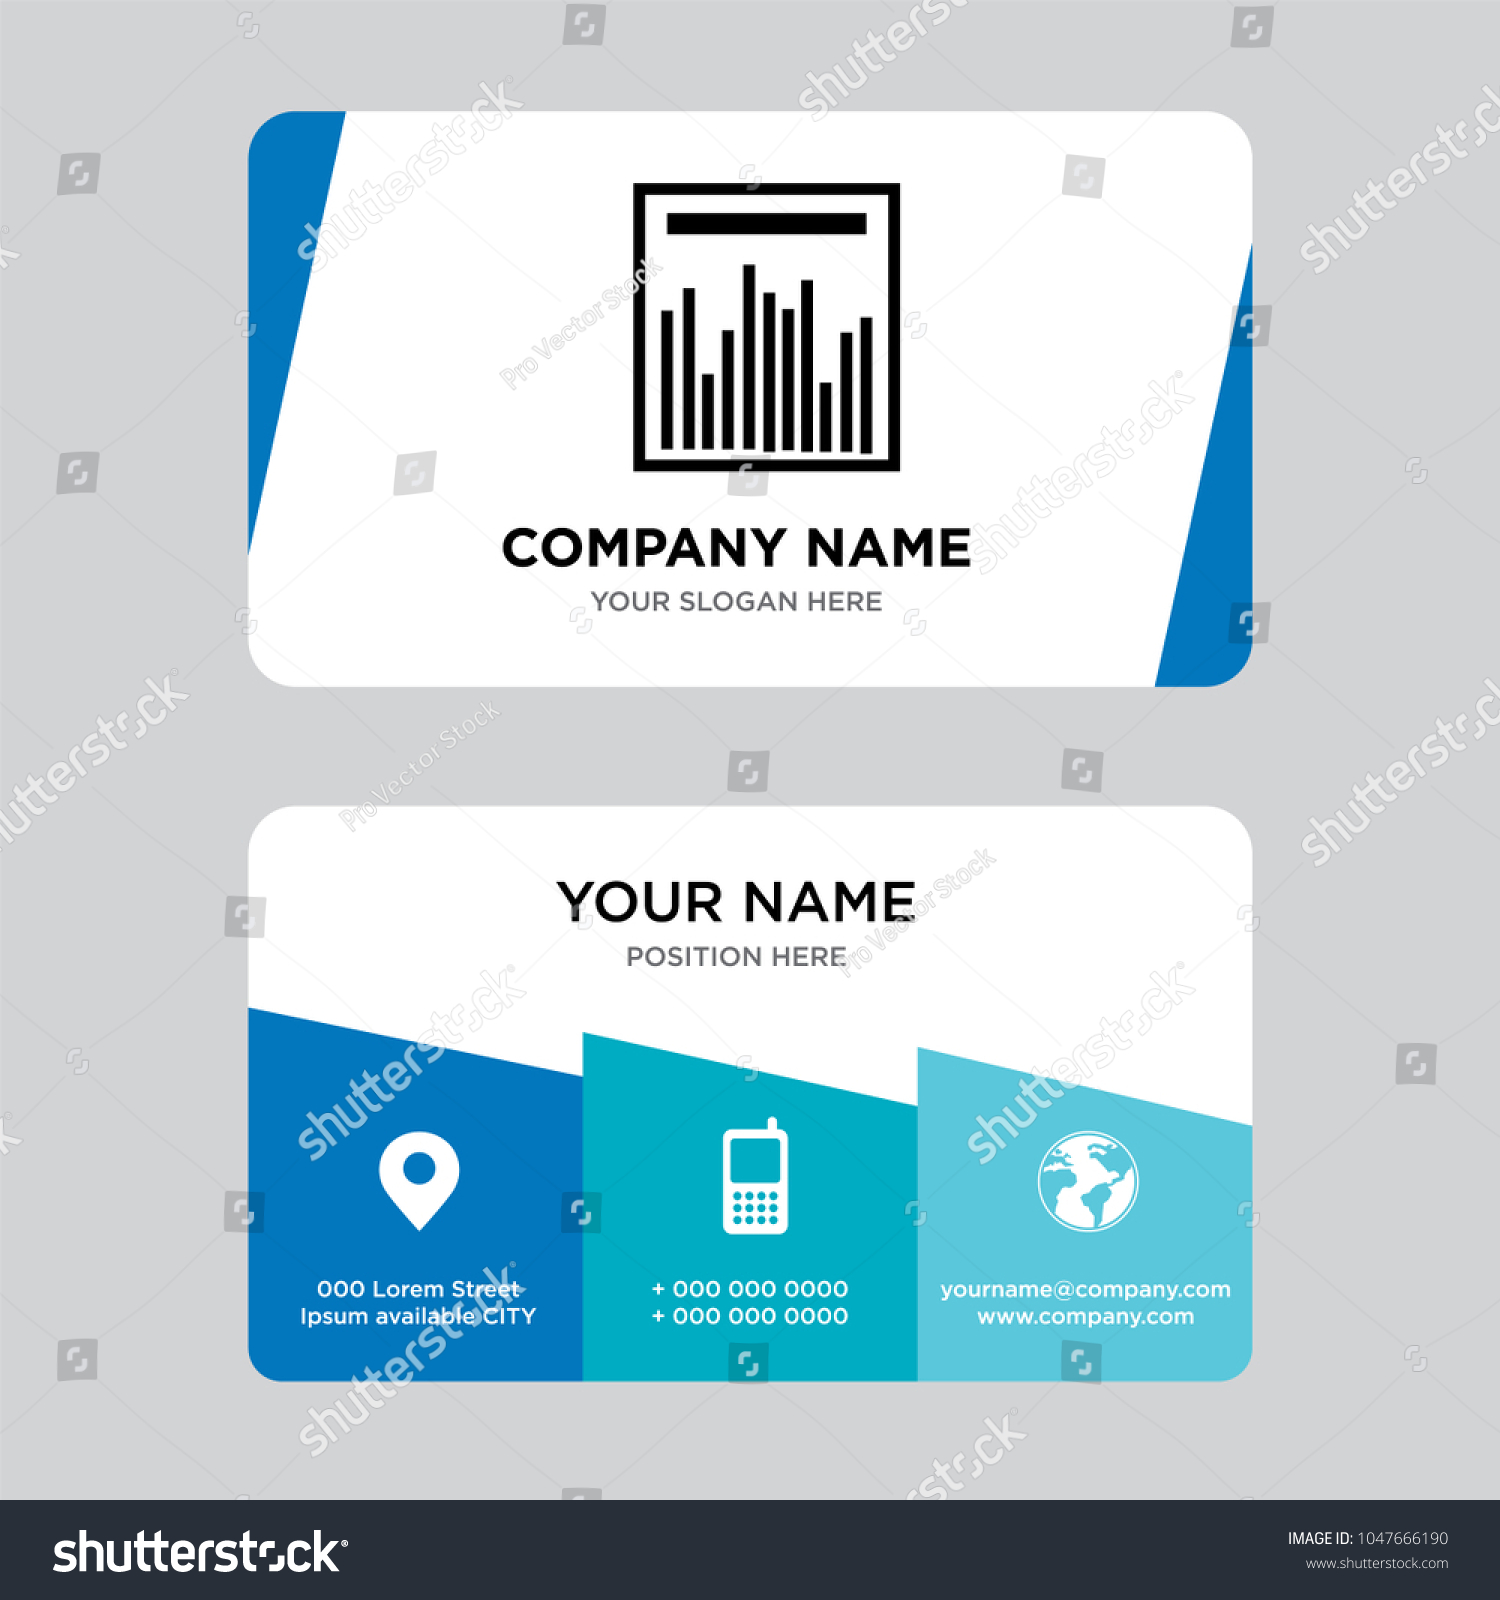 Statistics graph business card design template stock vector statistics graph business card design template visiting for your company modern creative and clean colourmoves